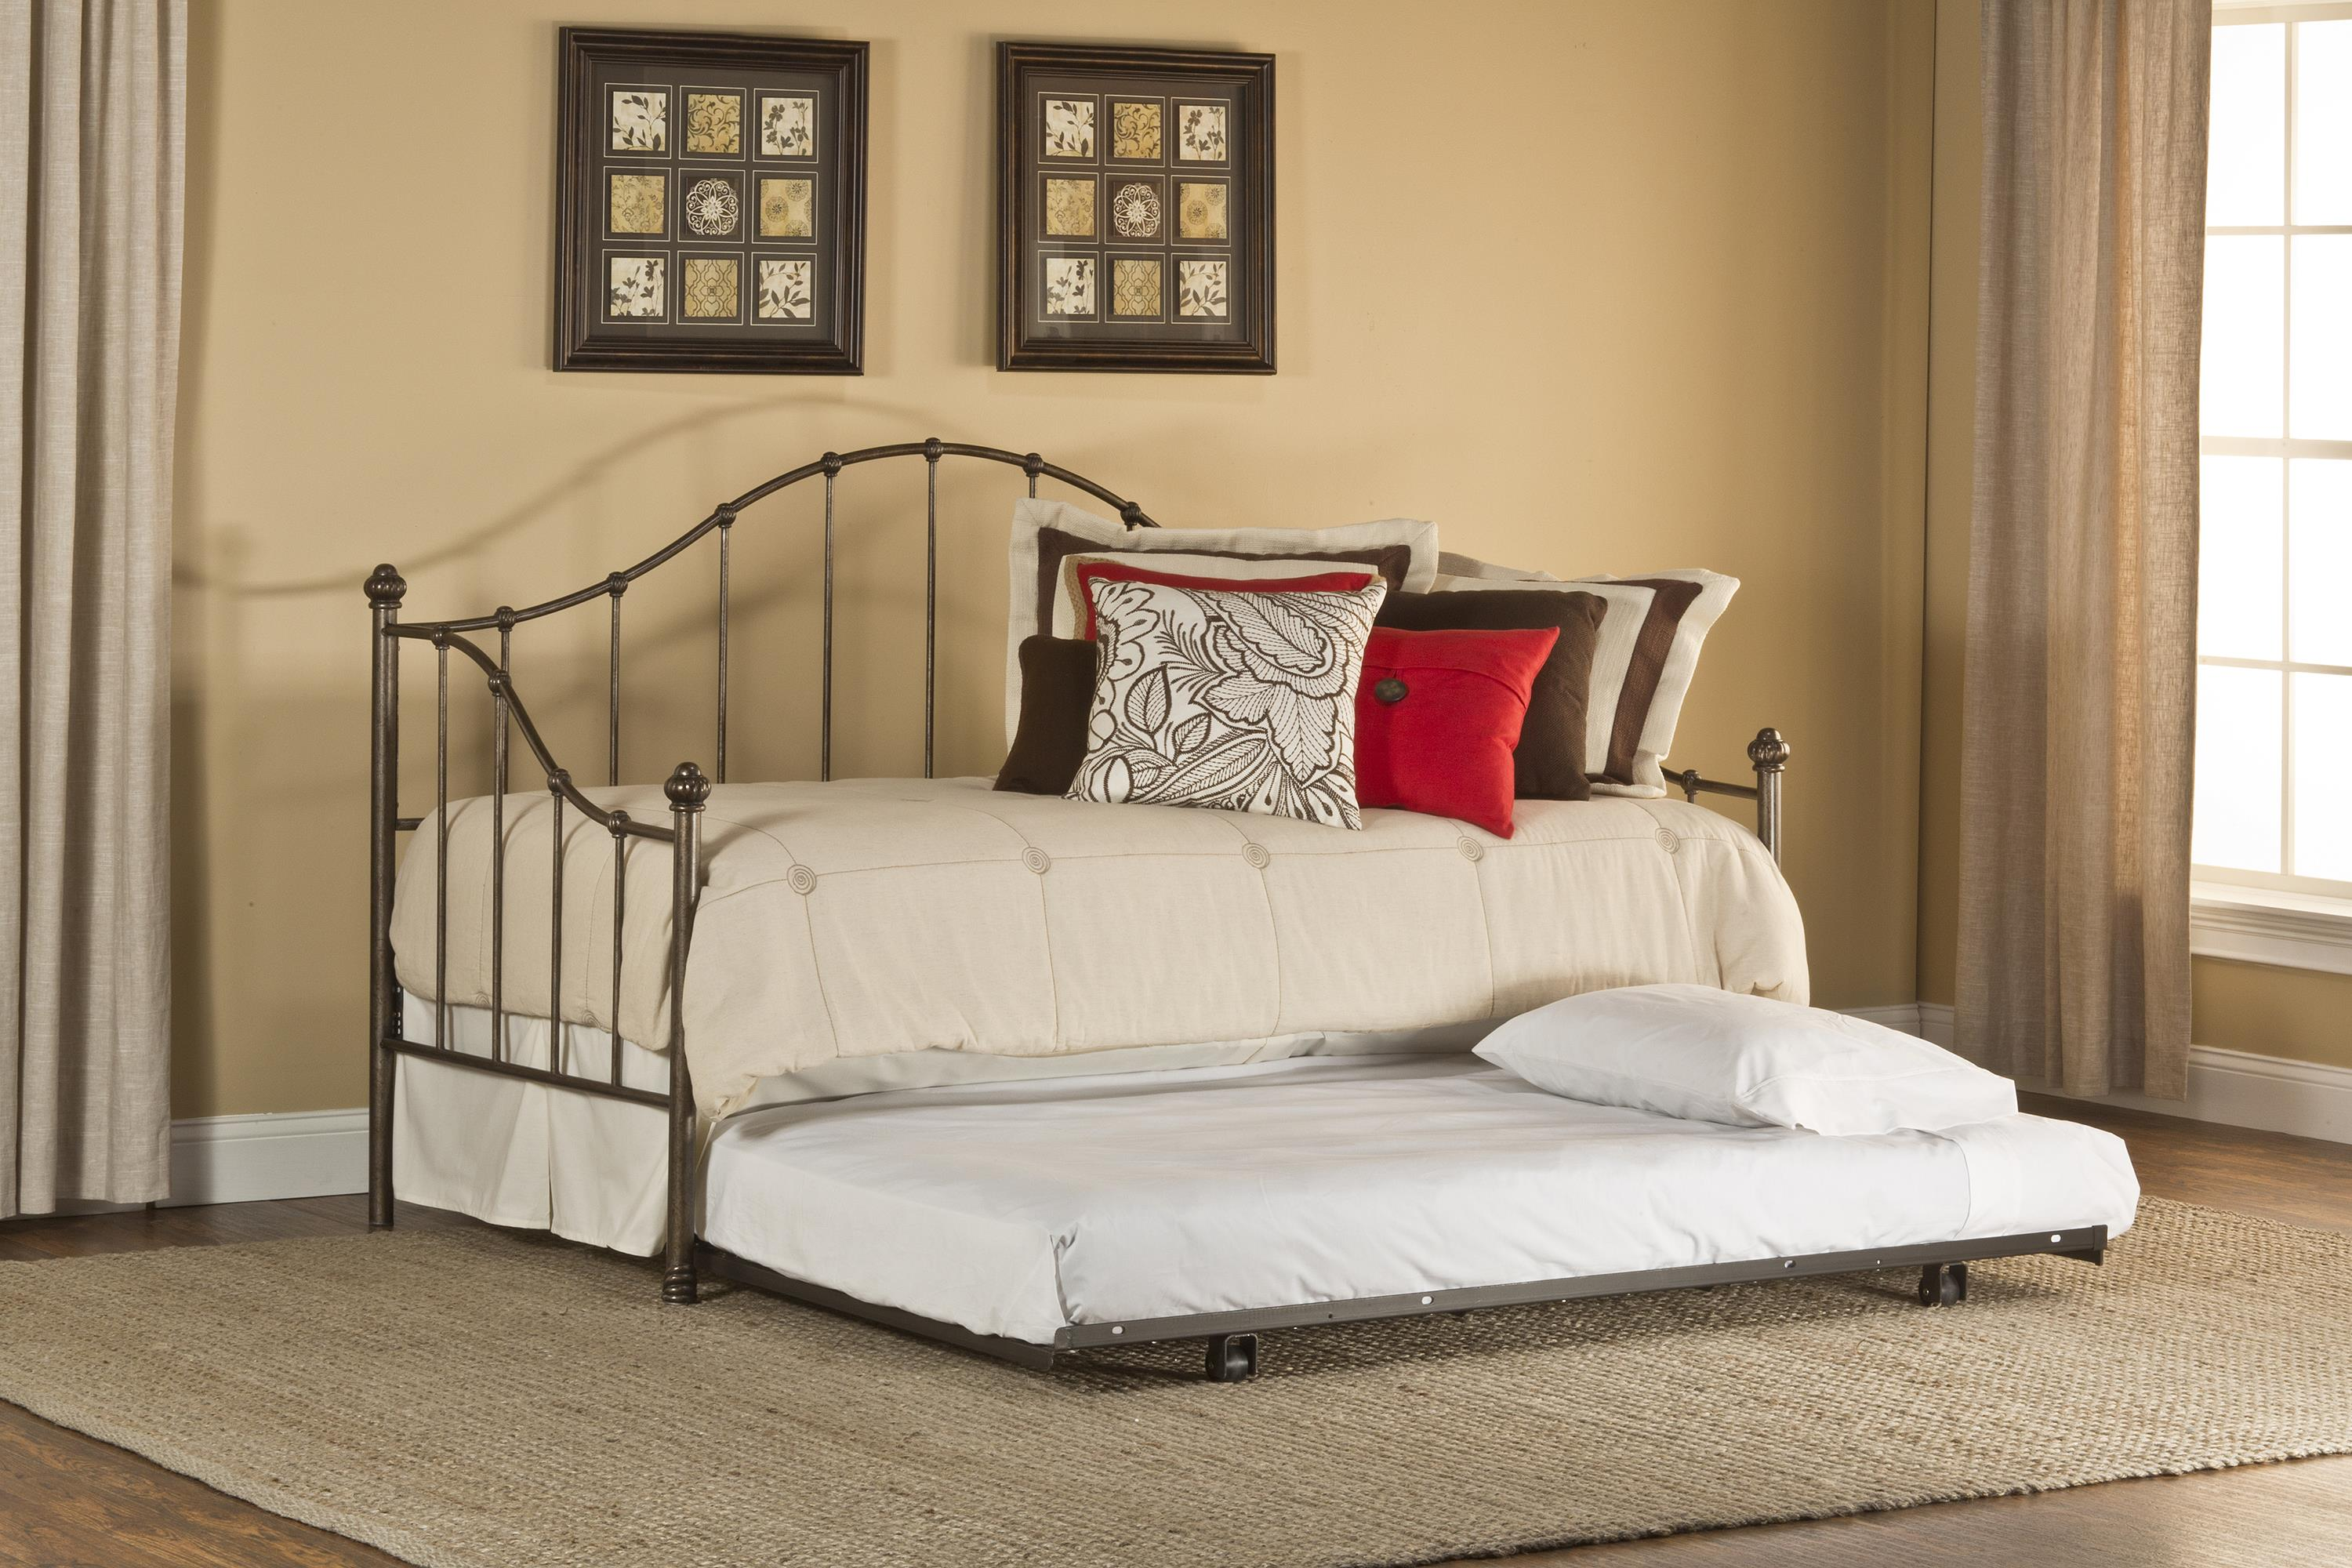 Hillsdale Daybeds Amy Daybed with Suspension Deck and Trundle - Item Number: 1271DBLHTR